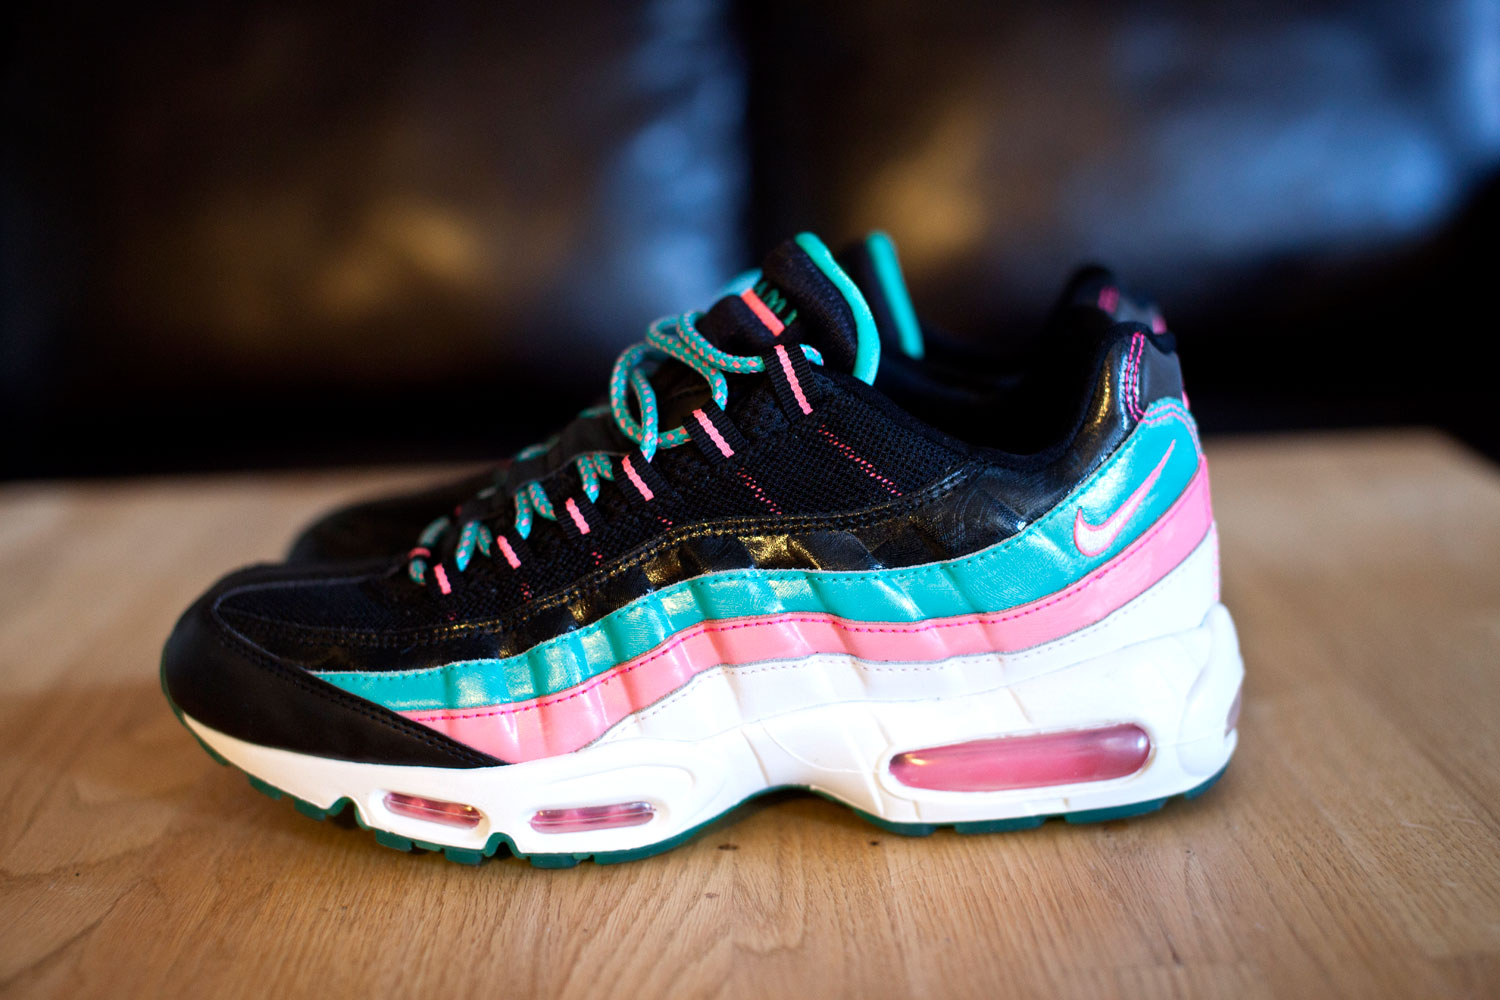 Nike Air Max 95 Miami Vice